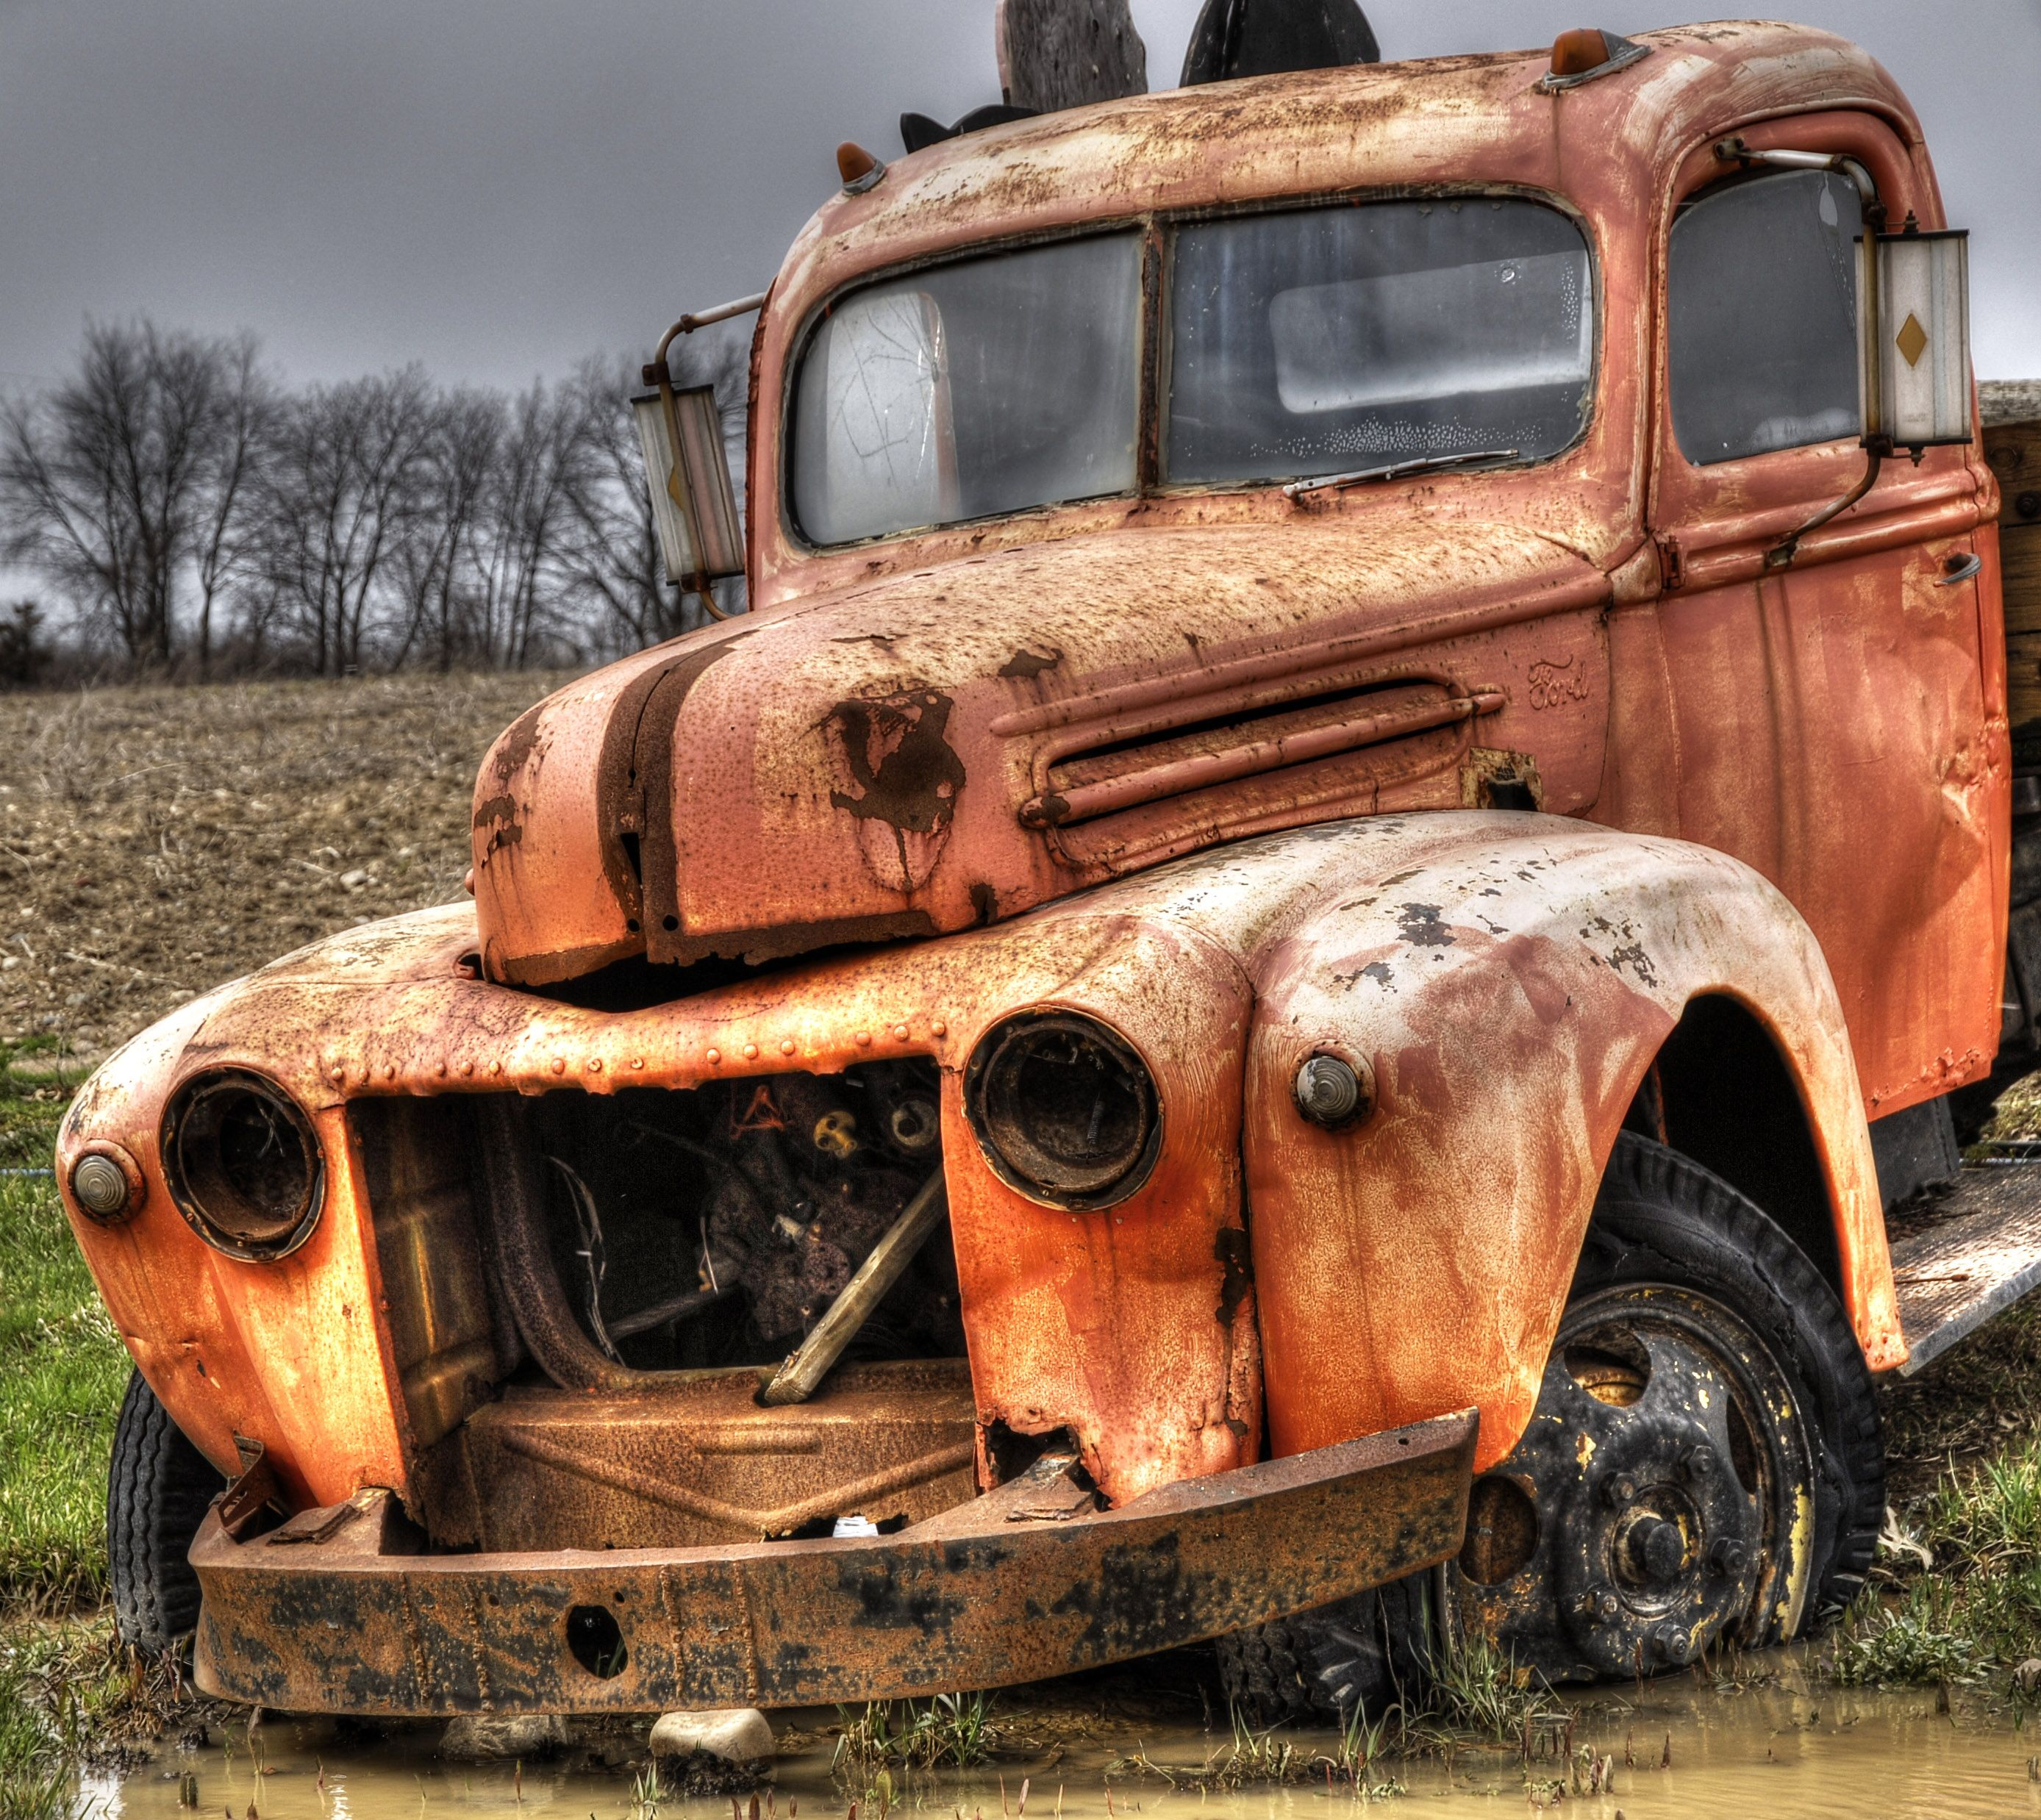 Old Rusty Car Pictures Old Cars And Trucks Ricksmithphotos Rusty Cars Old Cars Old Trucks